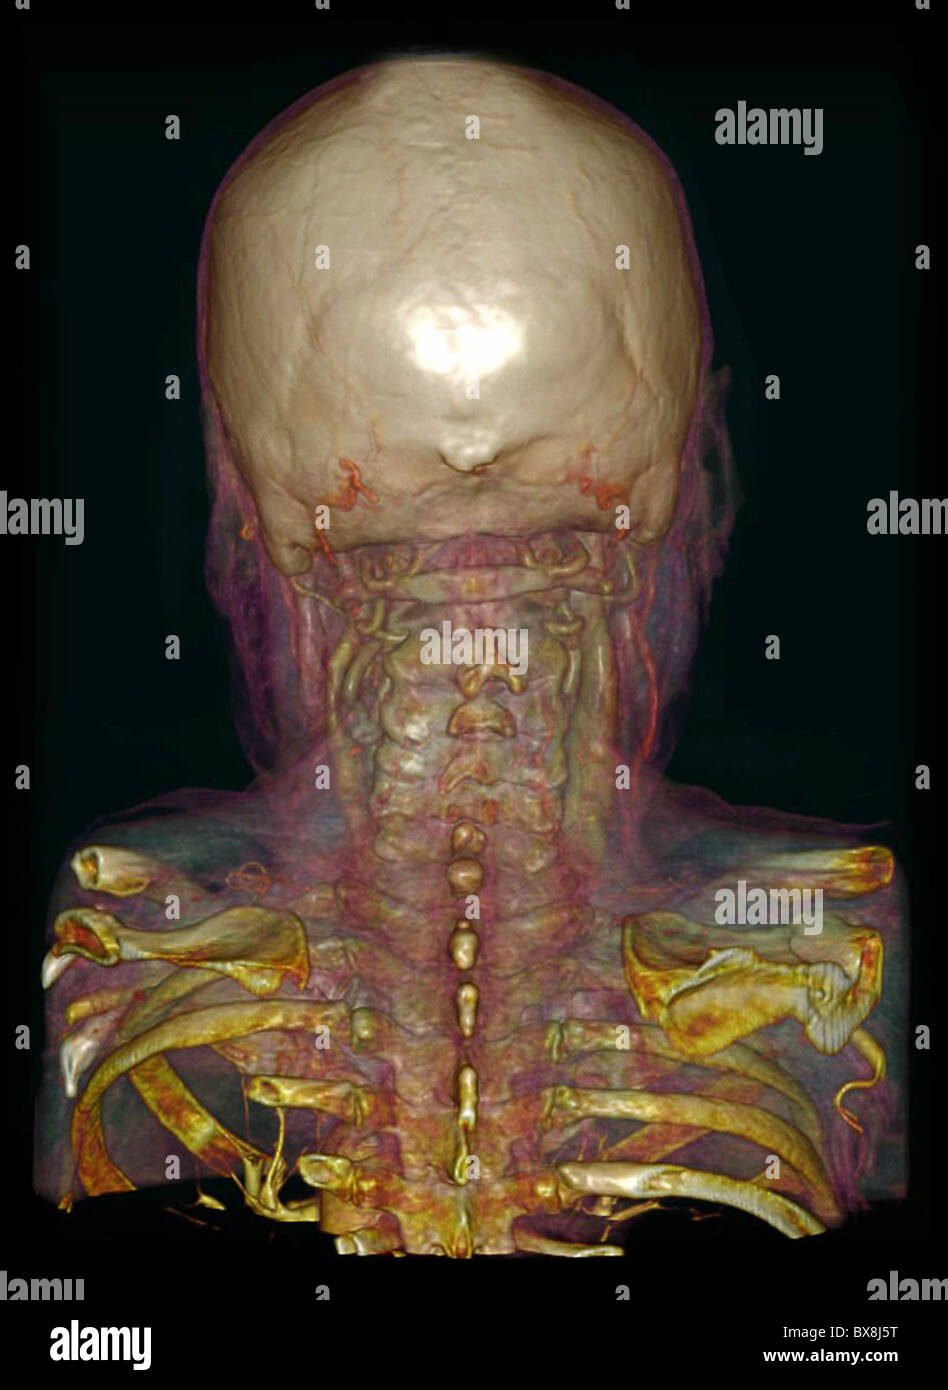 3D CT scan of the head of an elderly man Stock Photo: 33381316 - Alamy